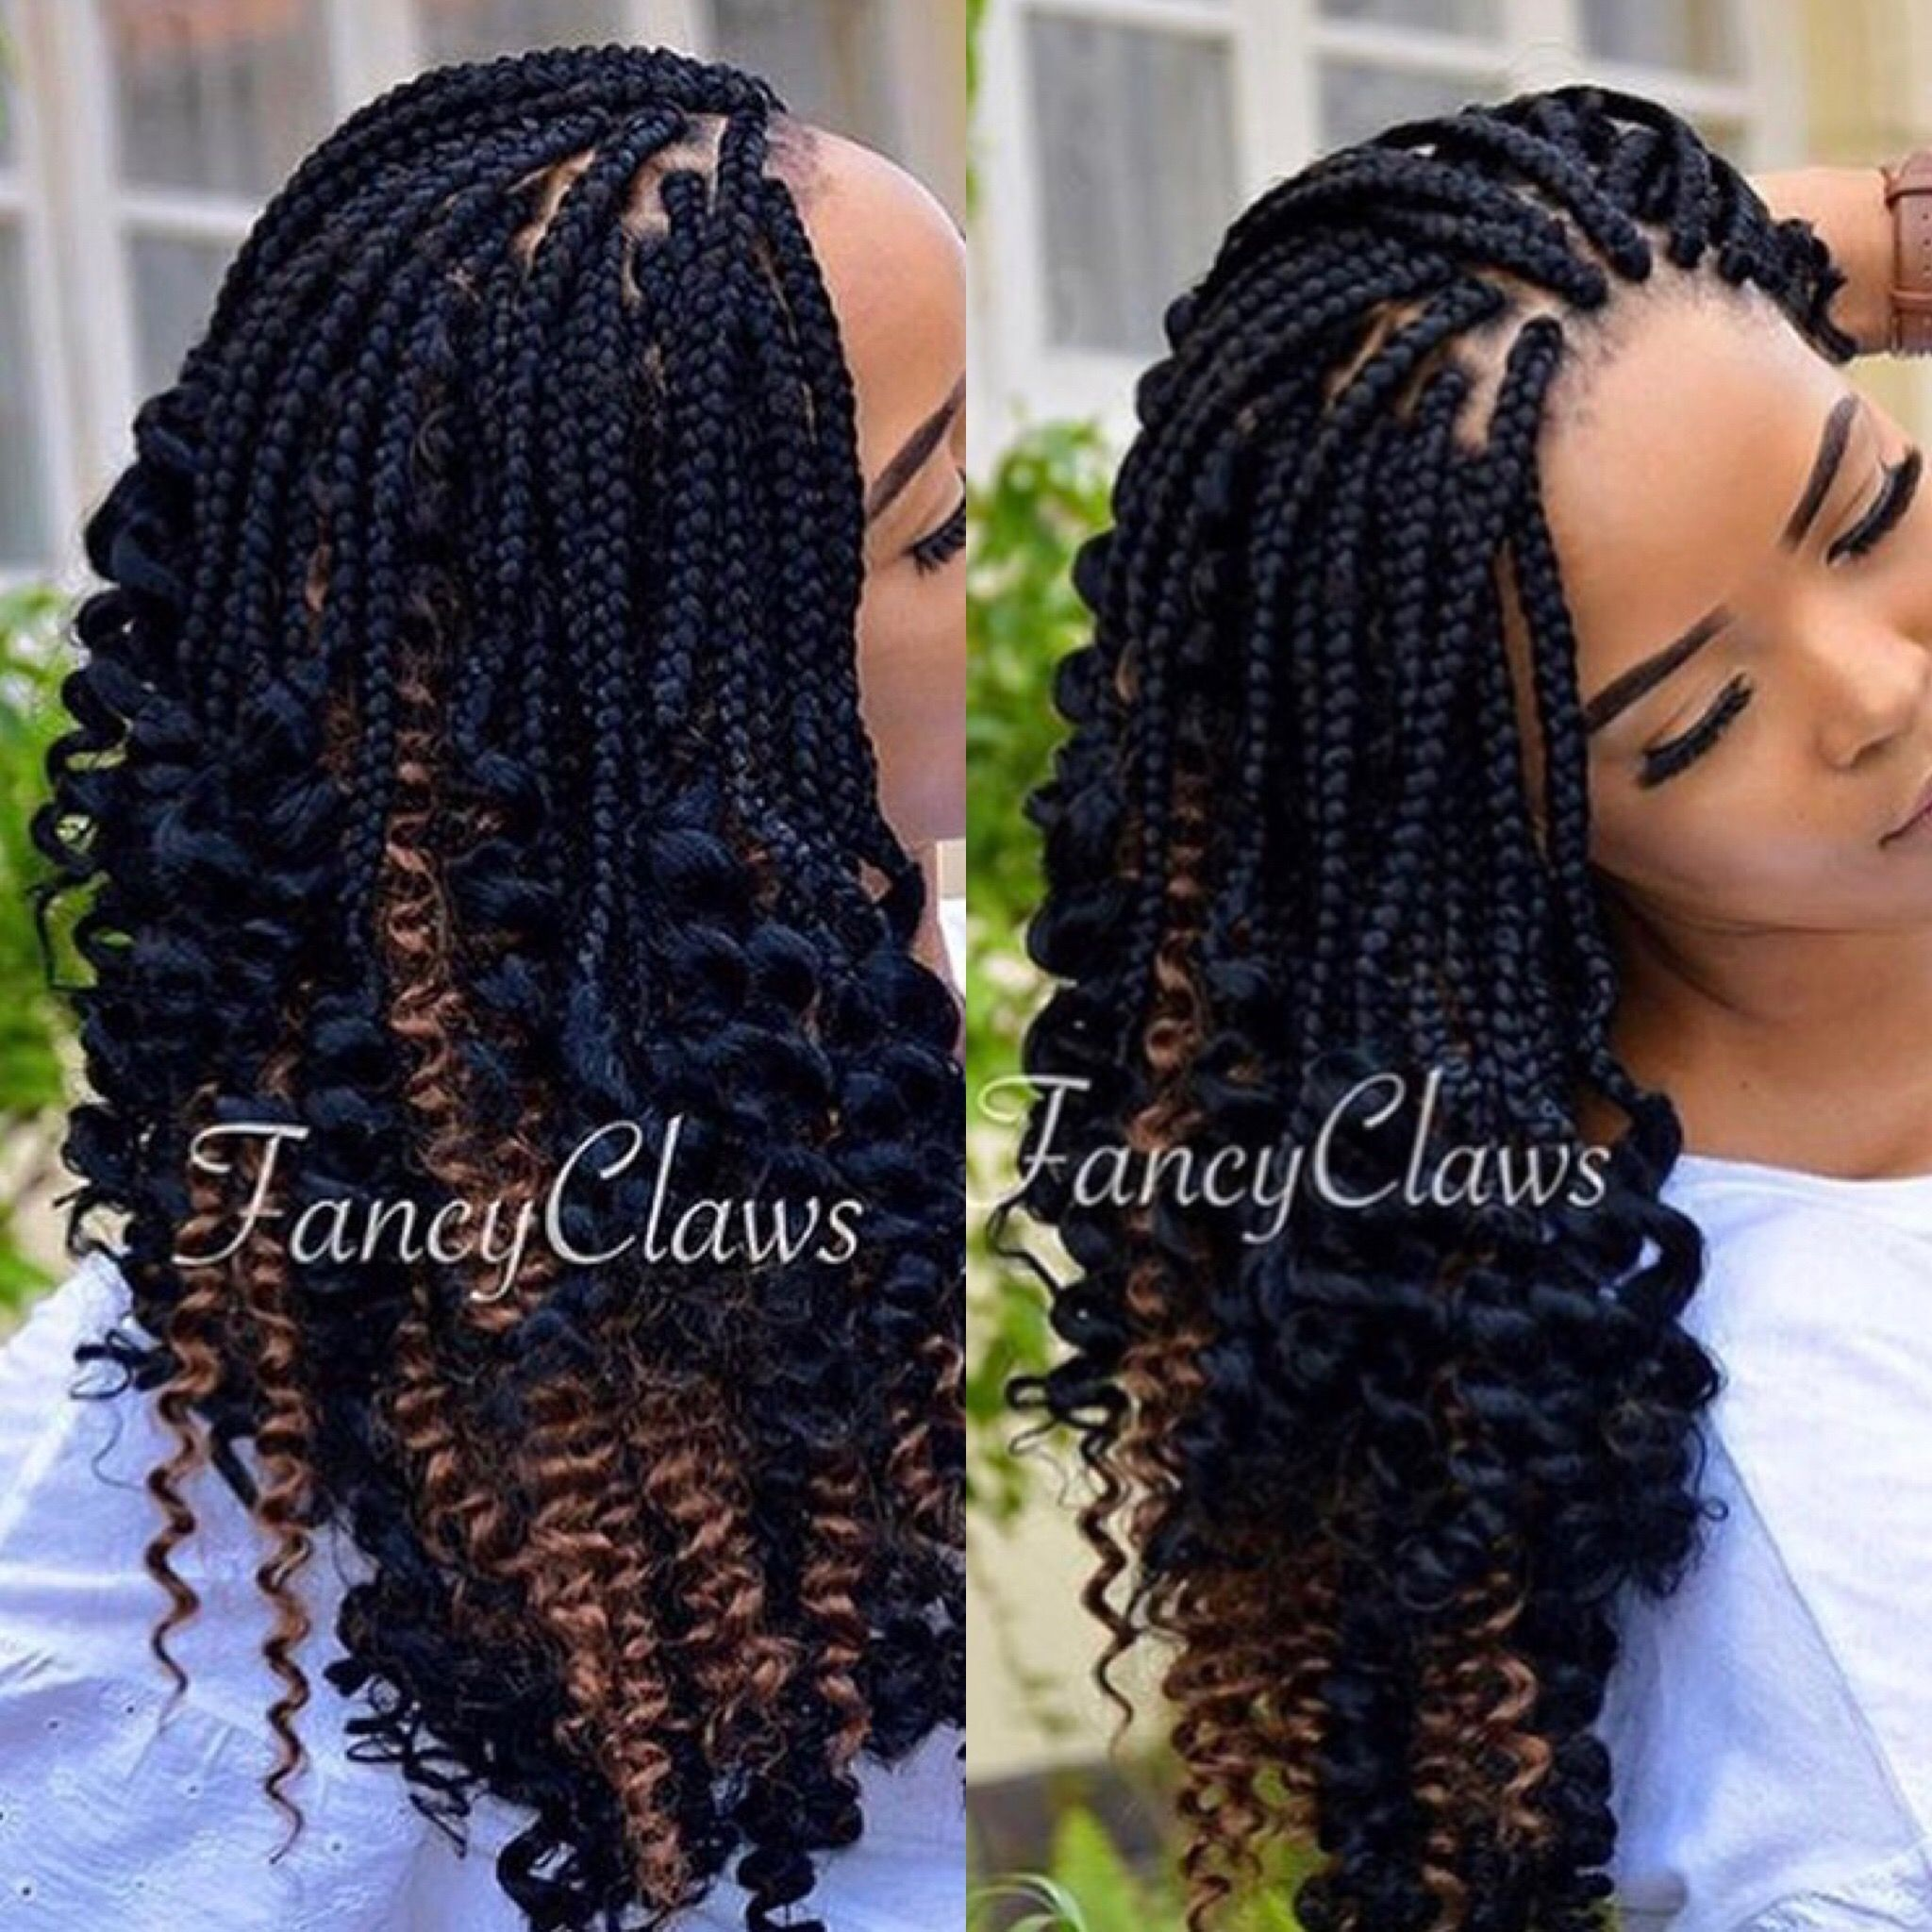 Best Braiding Hairstyles African American Hair 715 Store Human Hair Pieces Frizzy Braids One Side Cutting Hairstyle Boy